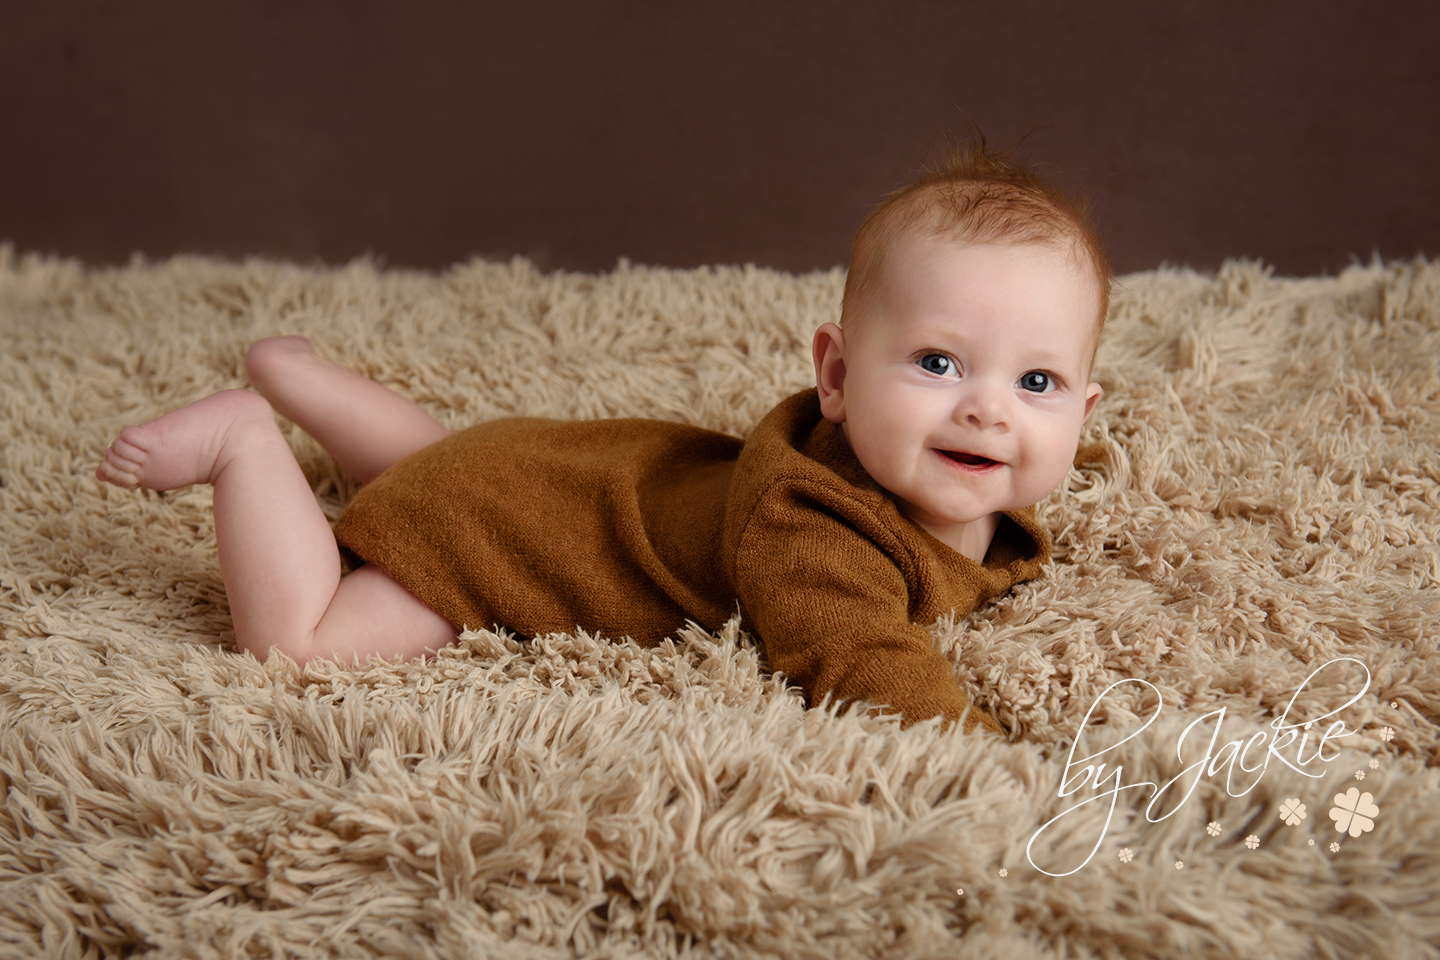 4 month old baby boy on his tummy for tummy milestone session with Babies By Jackie Photography in Market Weighton, near York, Pocklington, Asselby, Hessle and Hull, Yorkshire UK